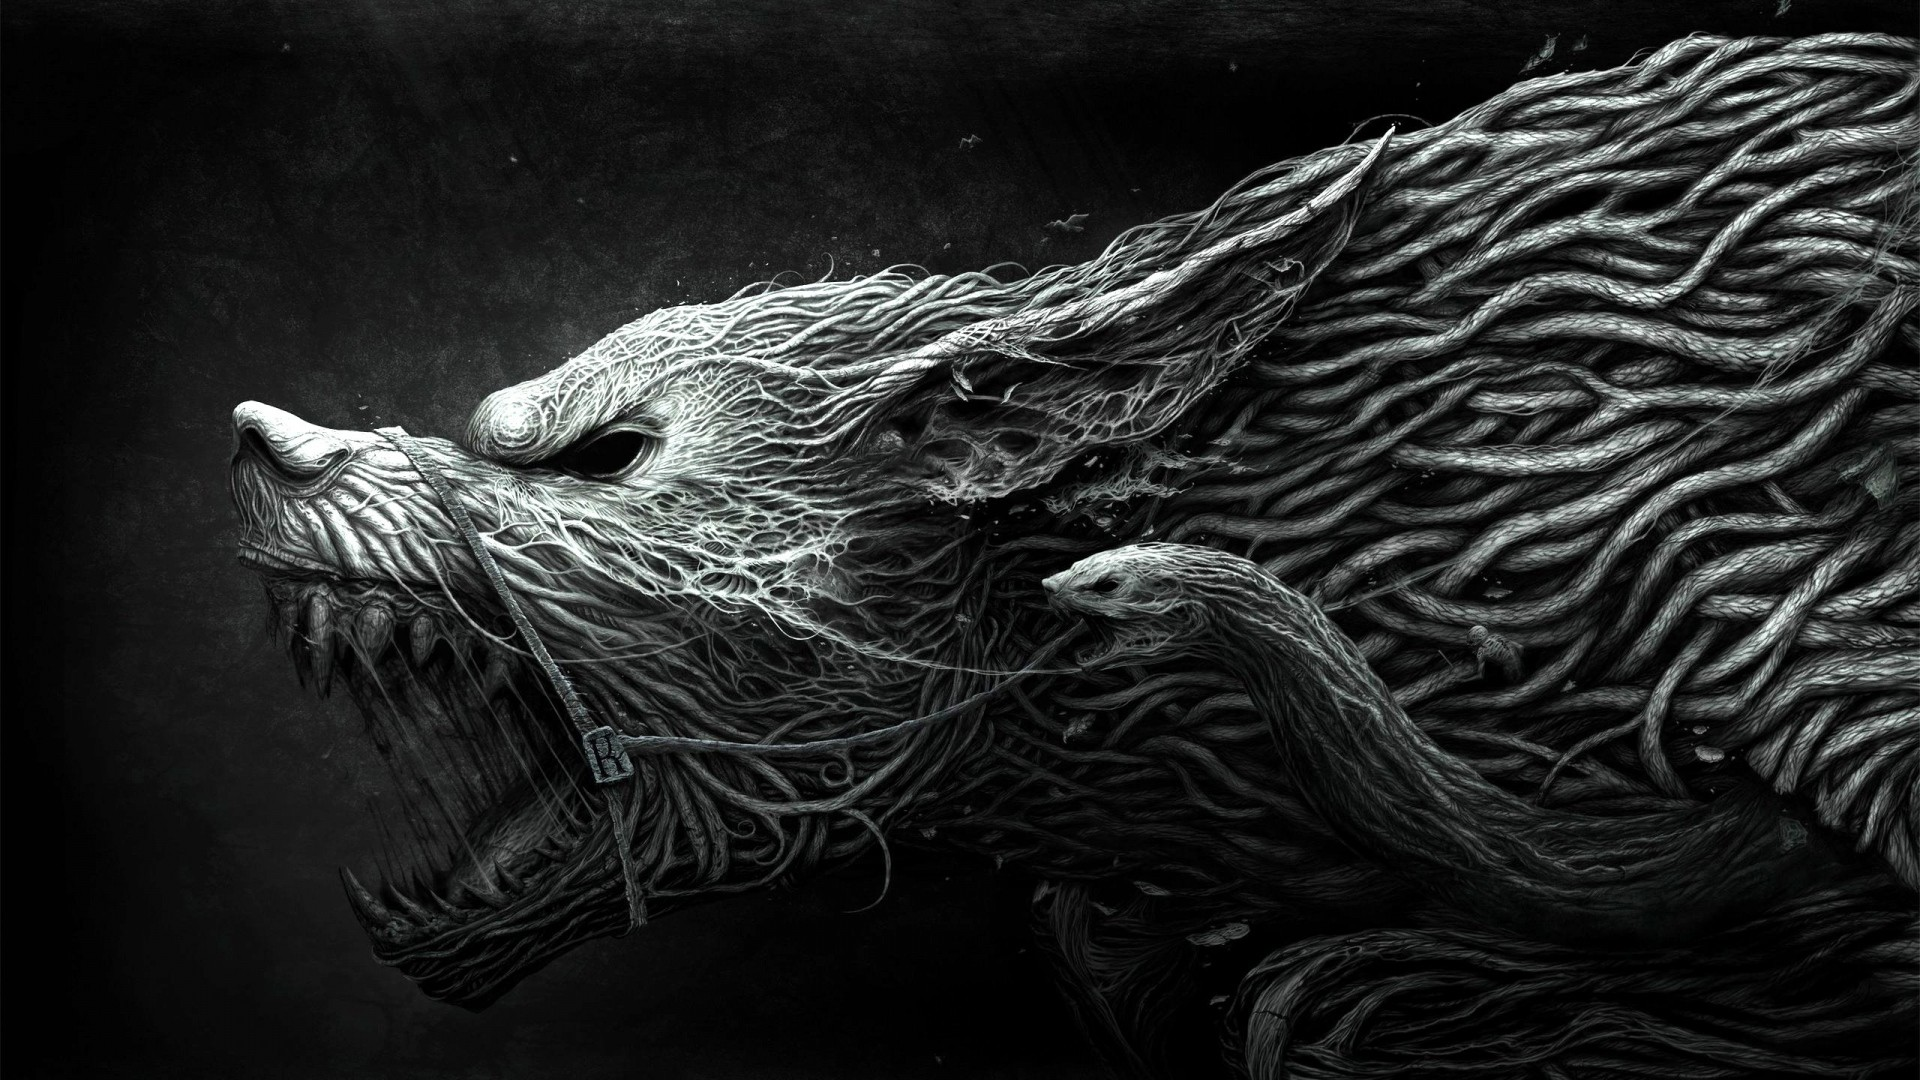 1920x1080 Preview Wallpaper Wolf Teeth Drawing Aggression Black White